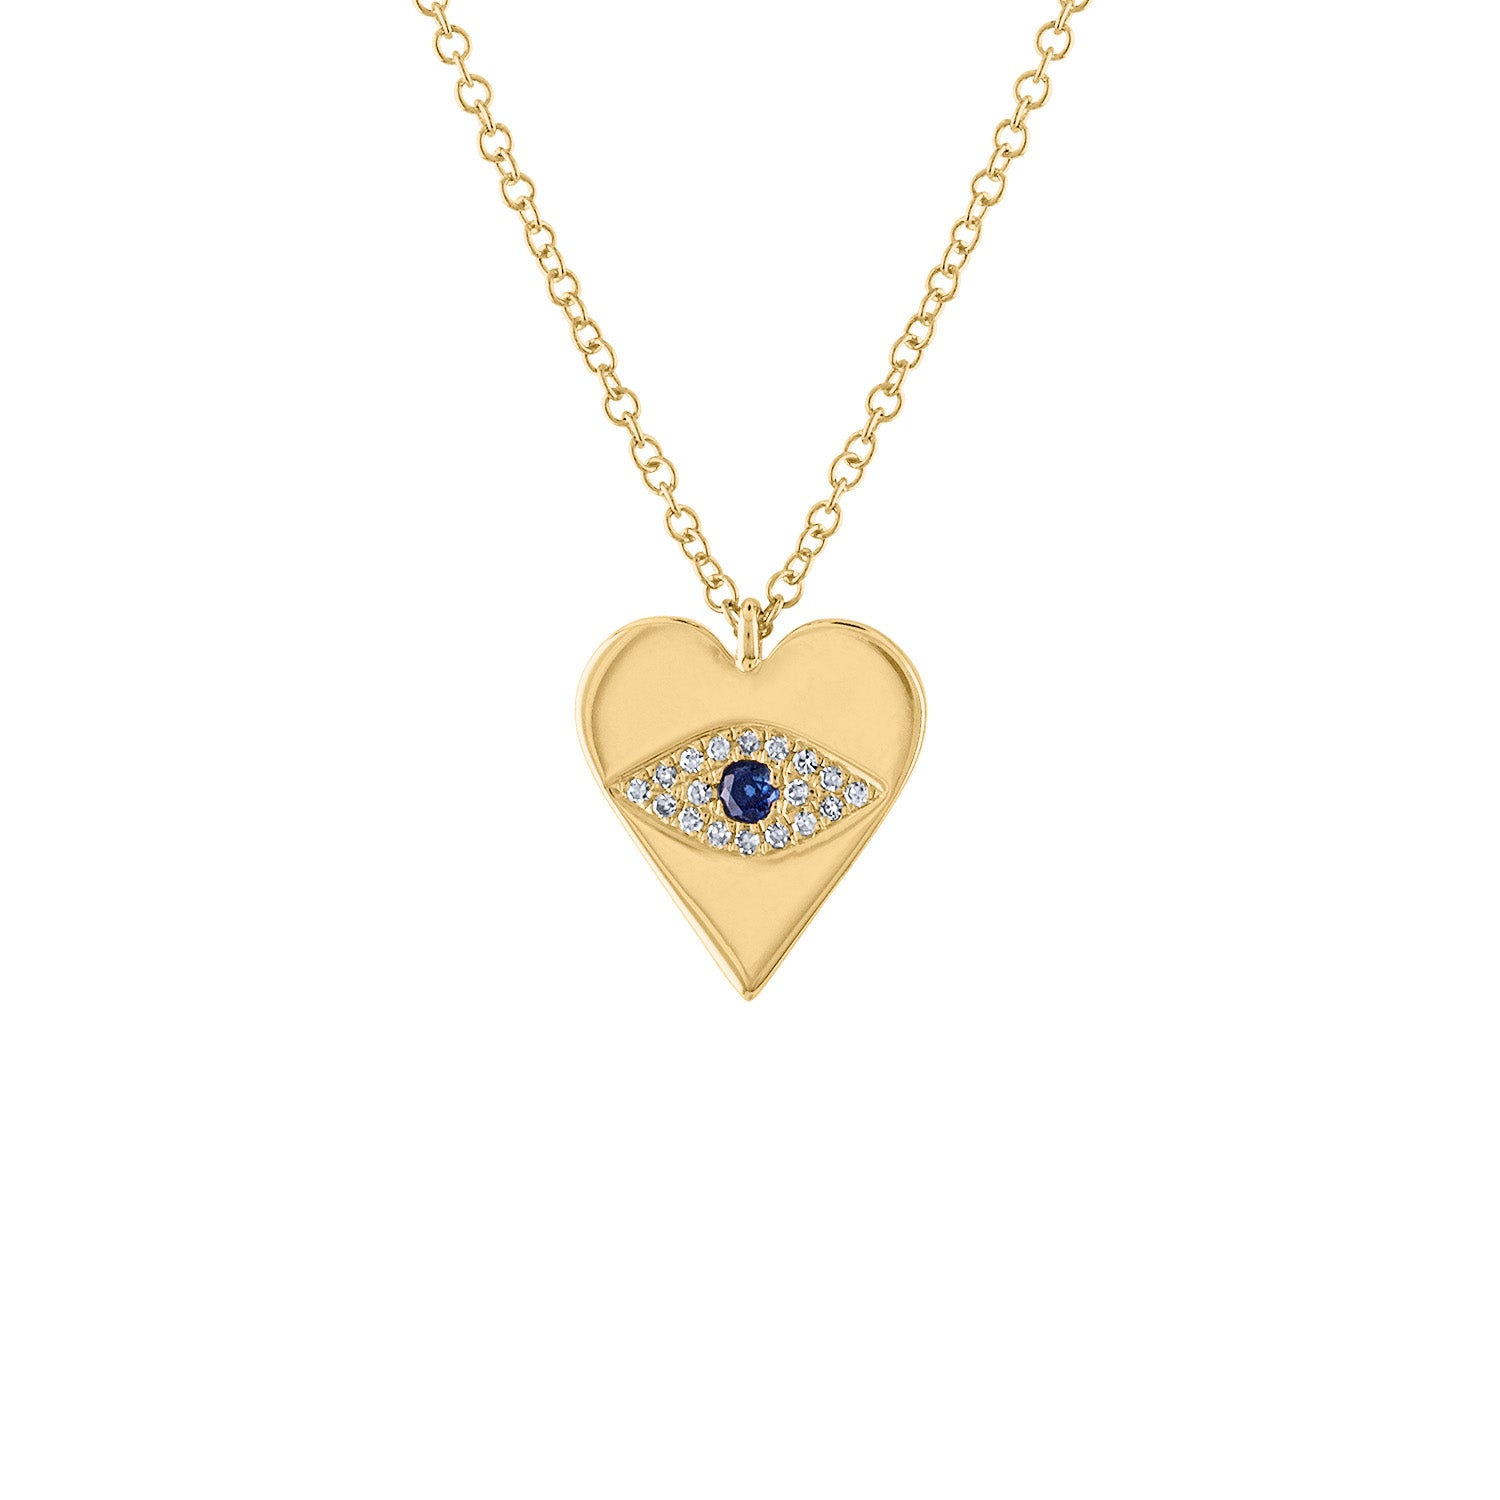 14KT GOLD HEART WITH DIAMOND EVIL EYE NECKLACE